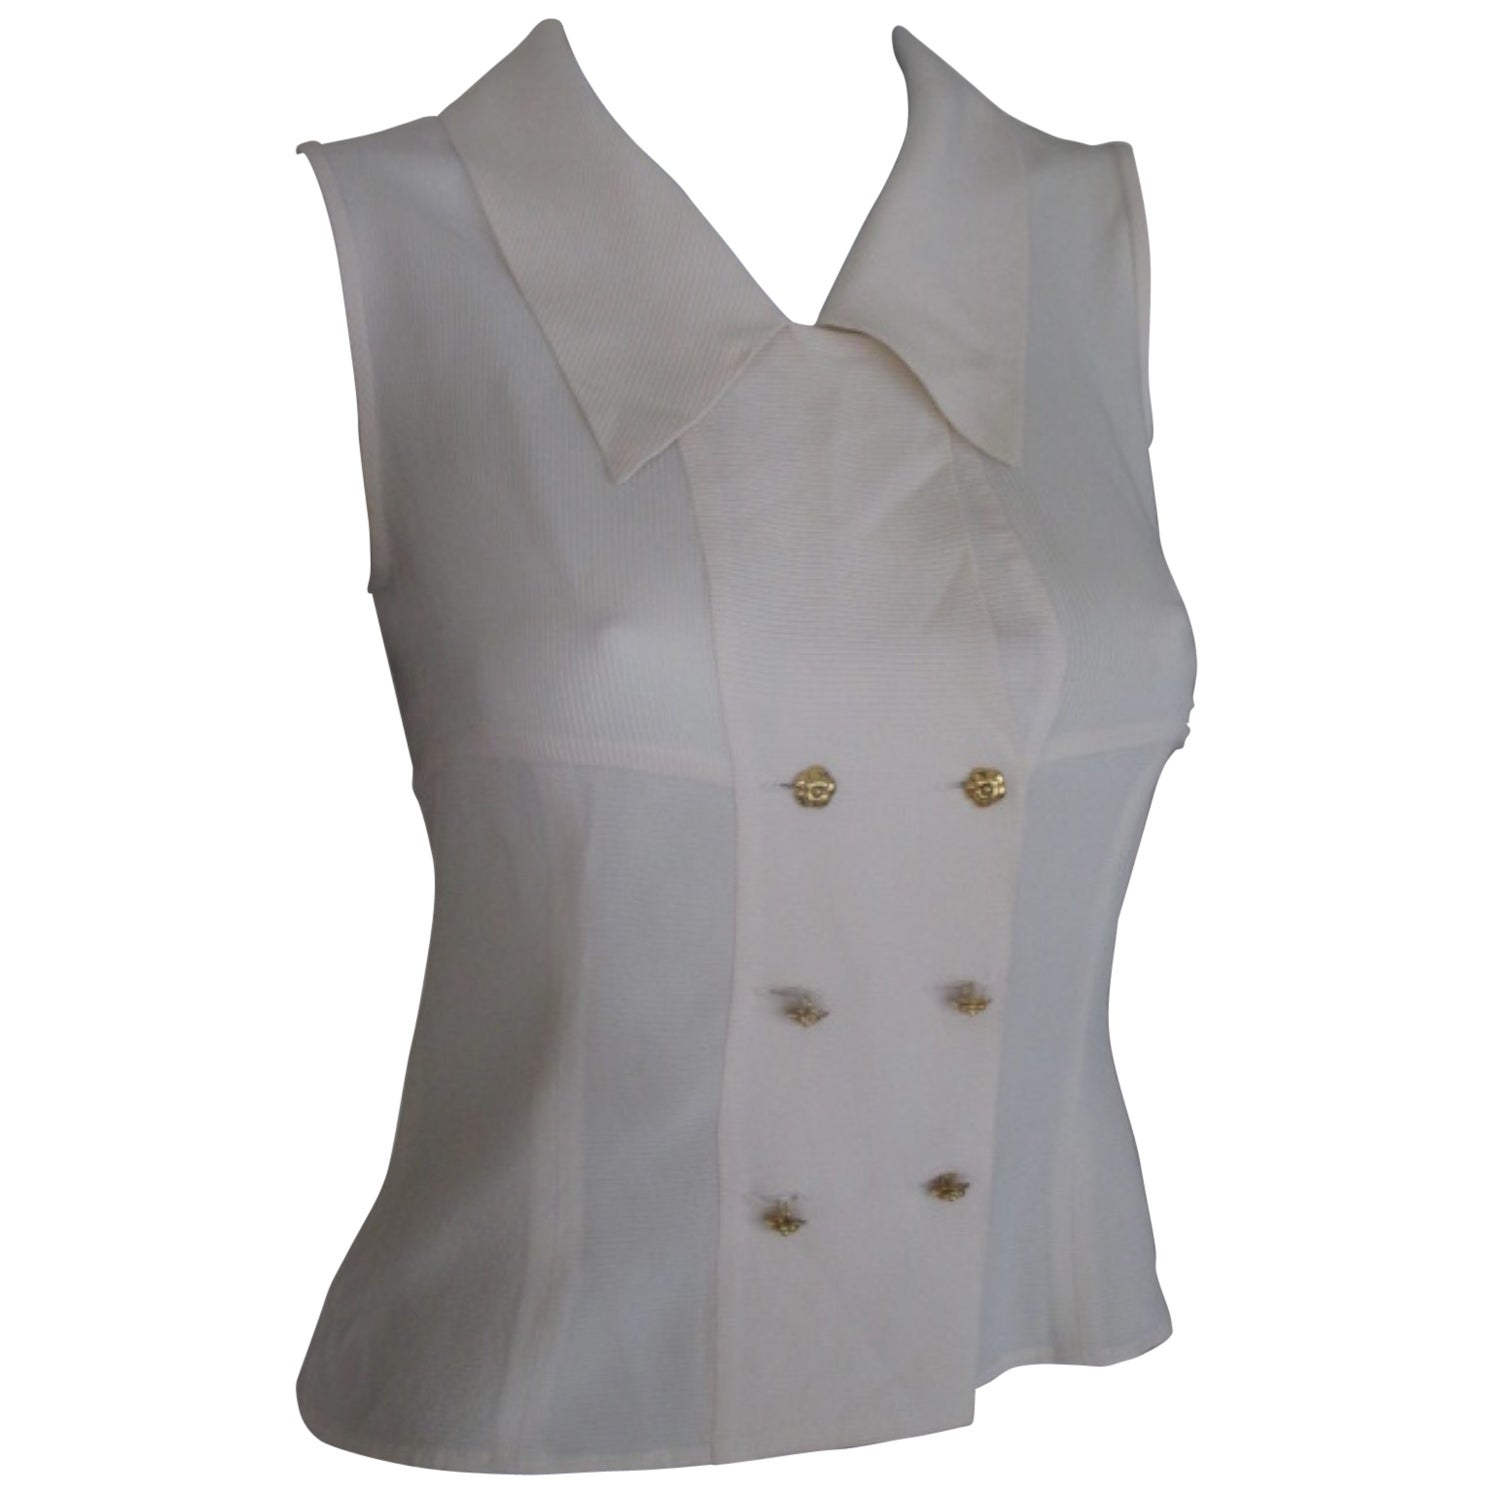 Chanel Sleeveless Blouse with Gold Flower Buttons